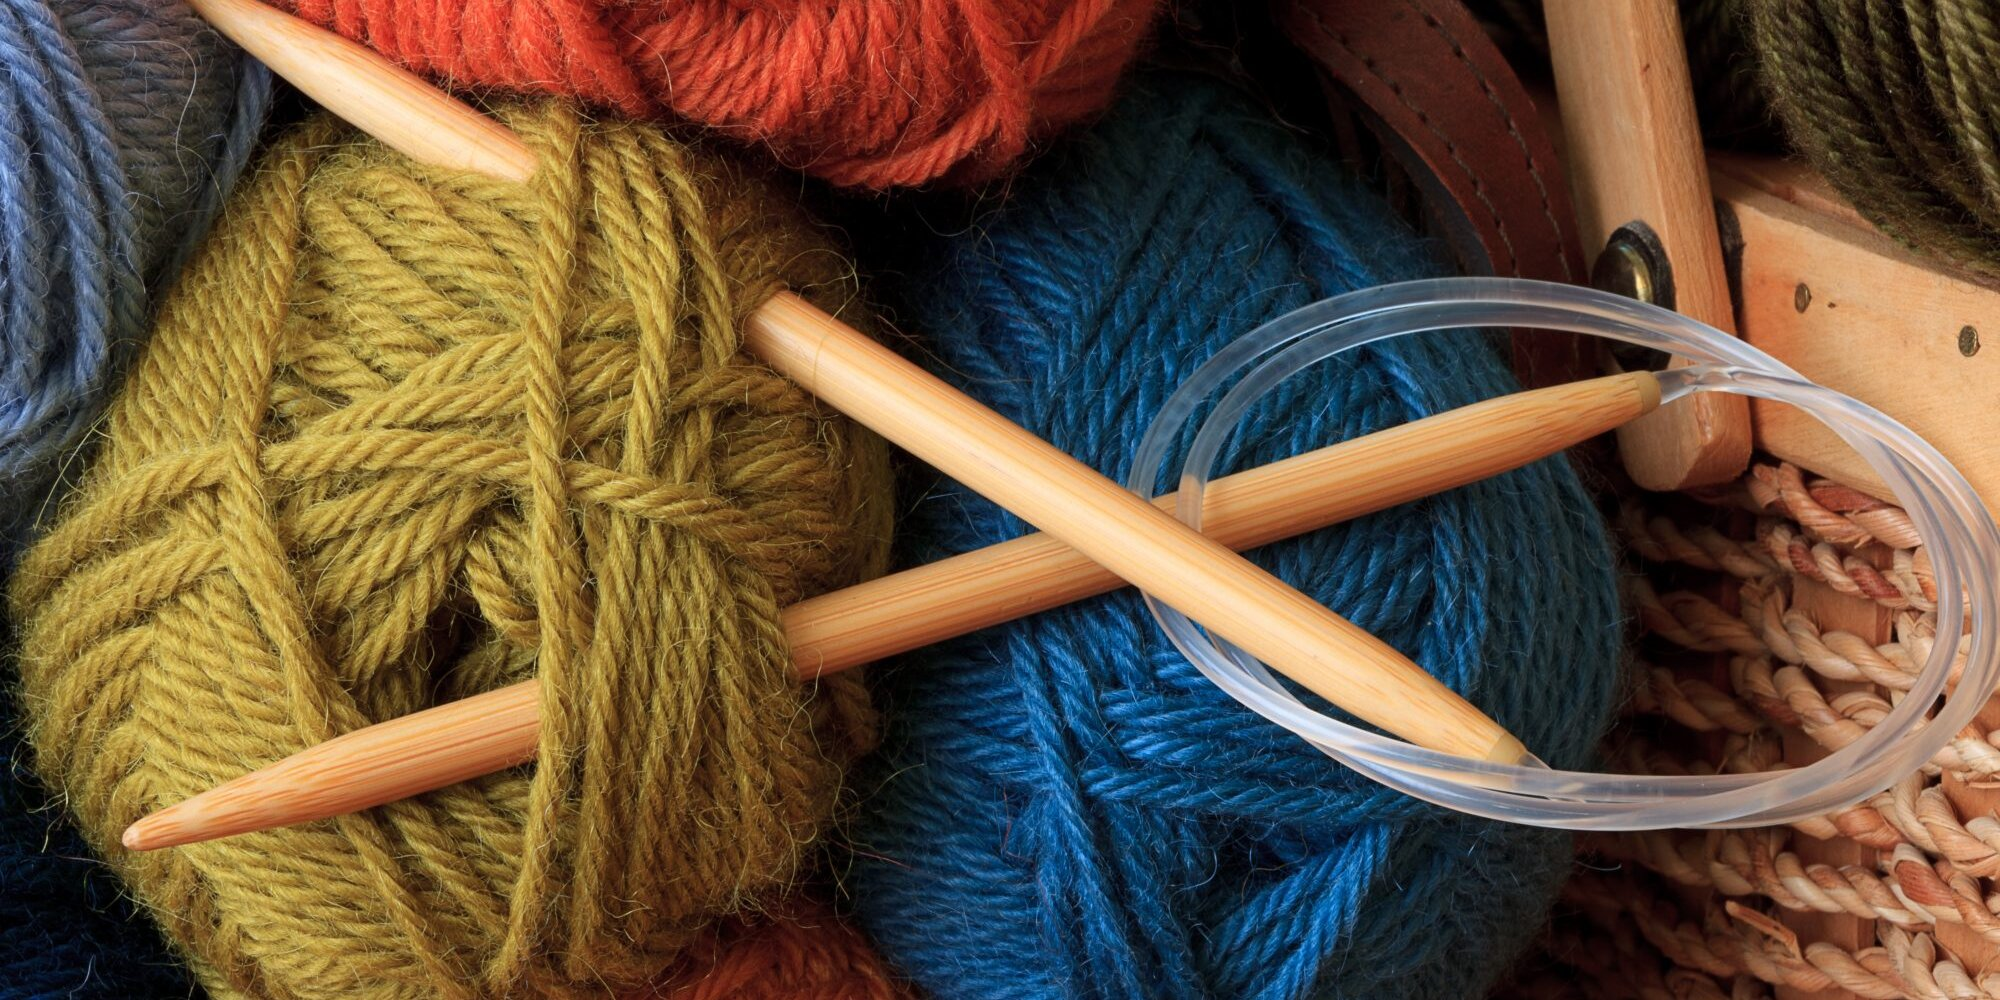 What Is Helix Knitting? Learn All About the Technique That Puts Your Leftover Yarn to Good Use